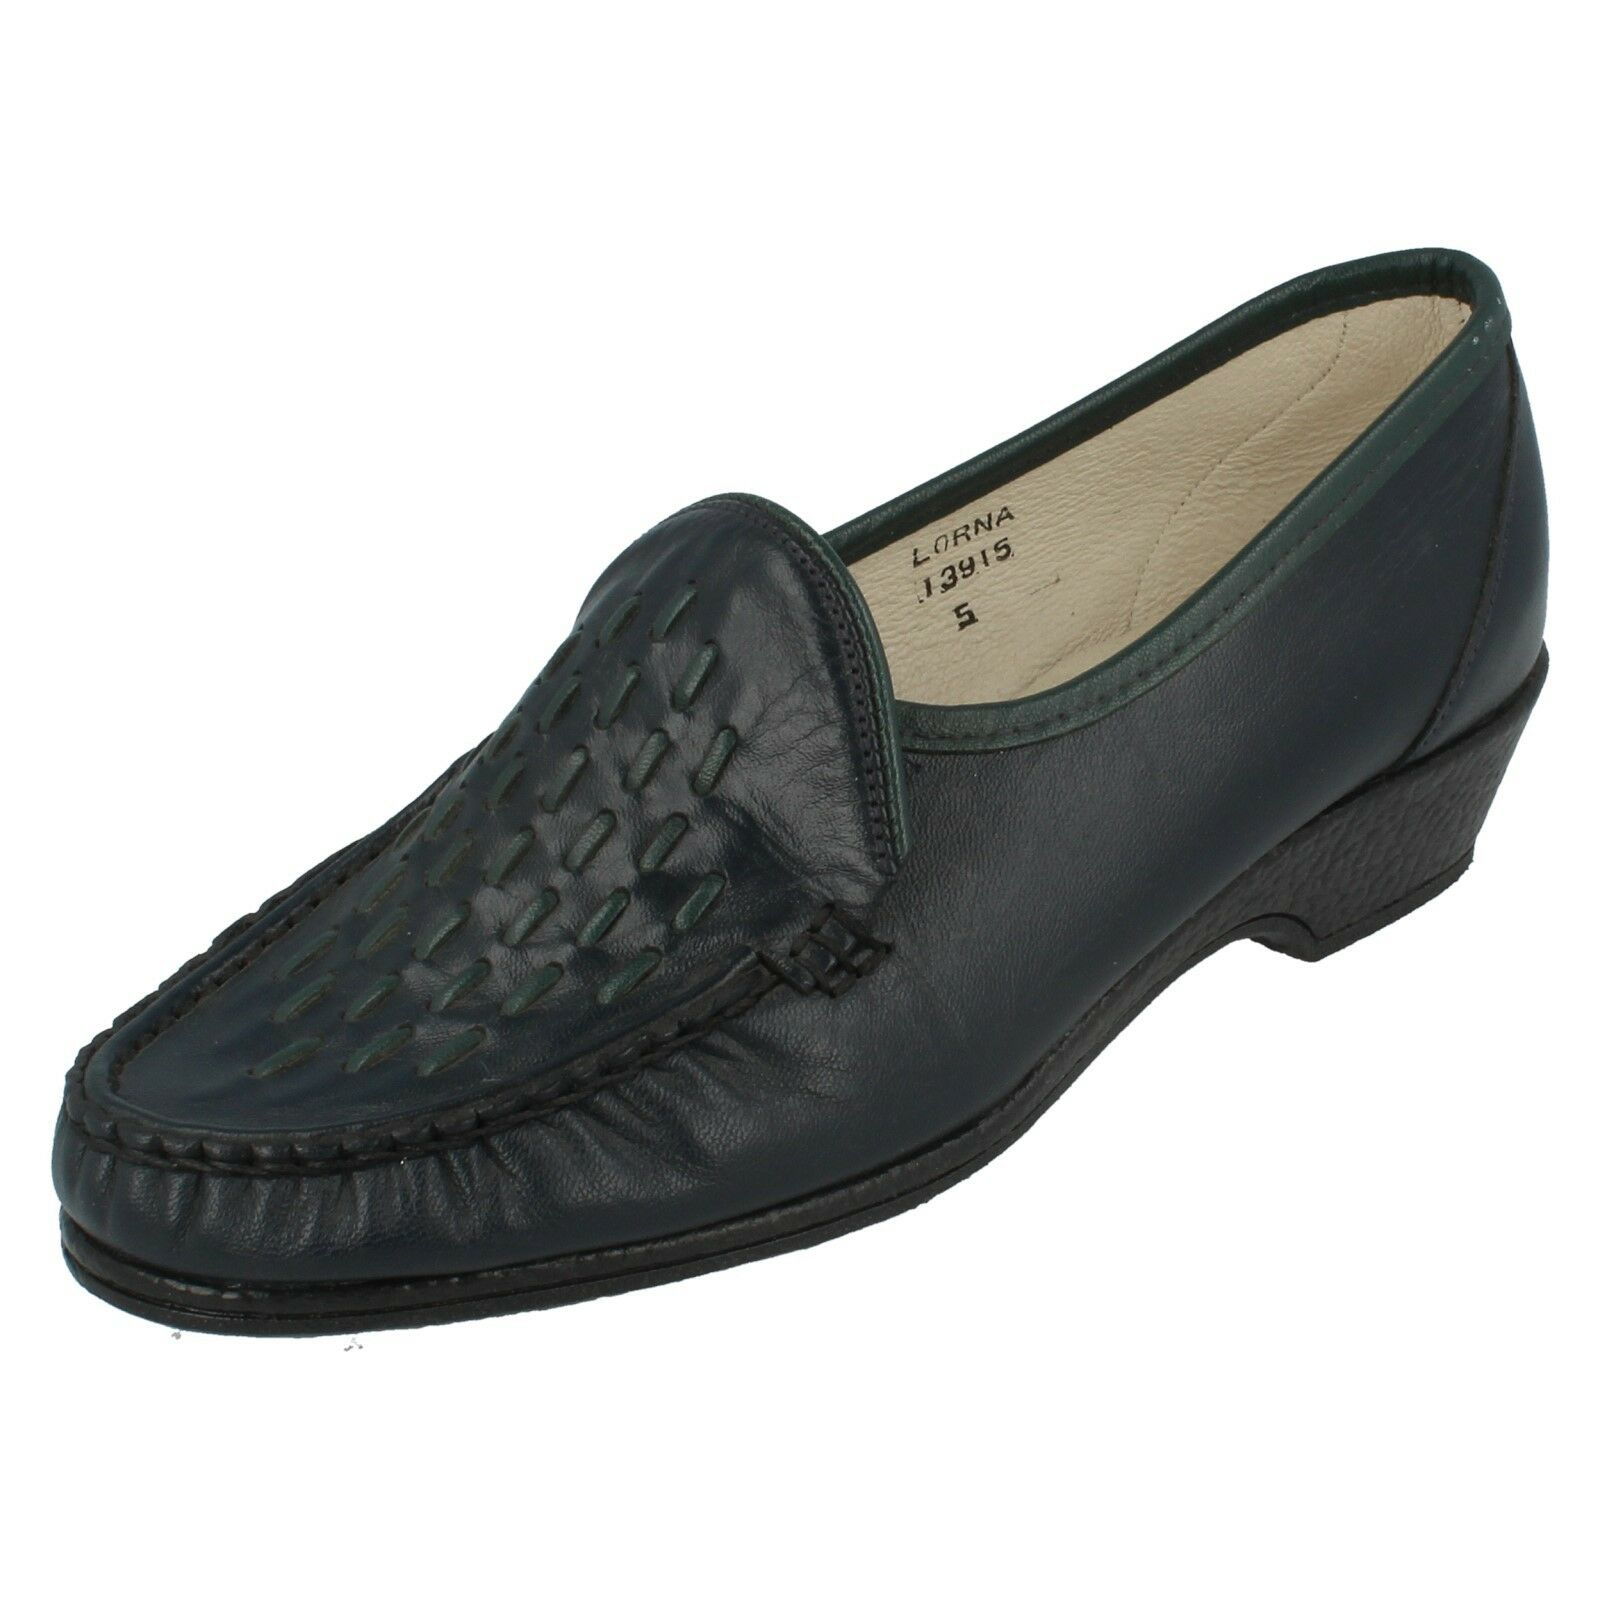 Ladies navy/green leather SANDPIPER shoes style LORA UK 5